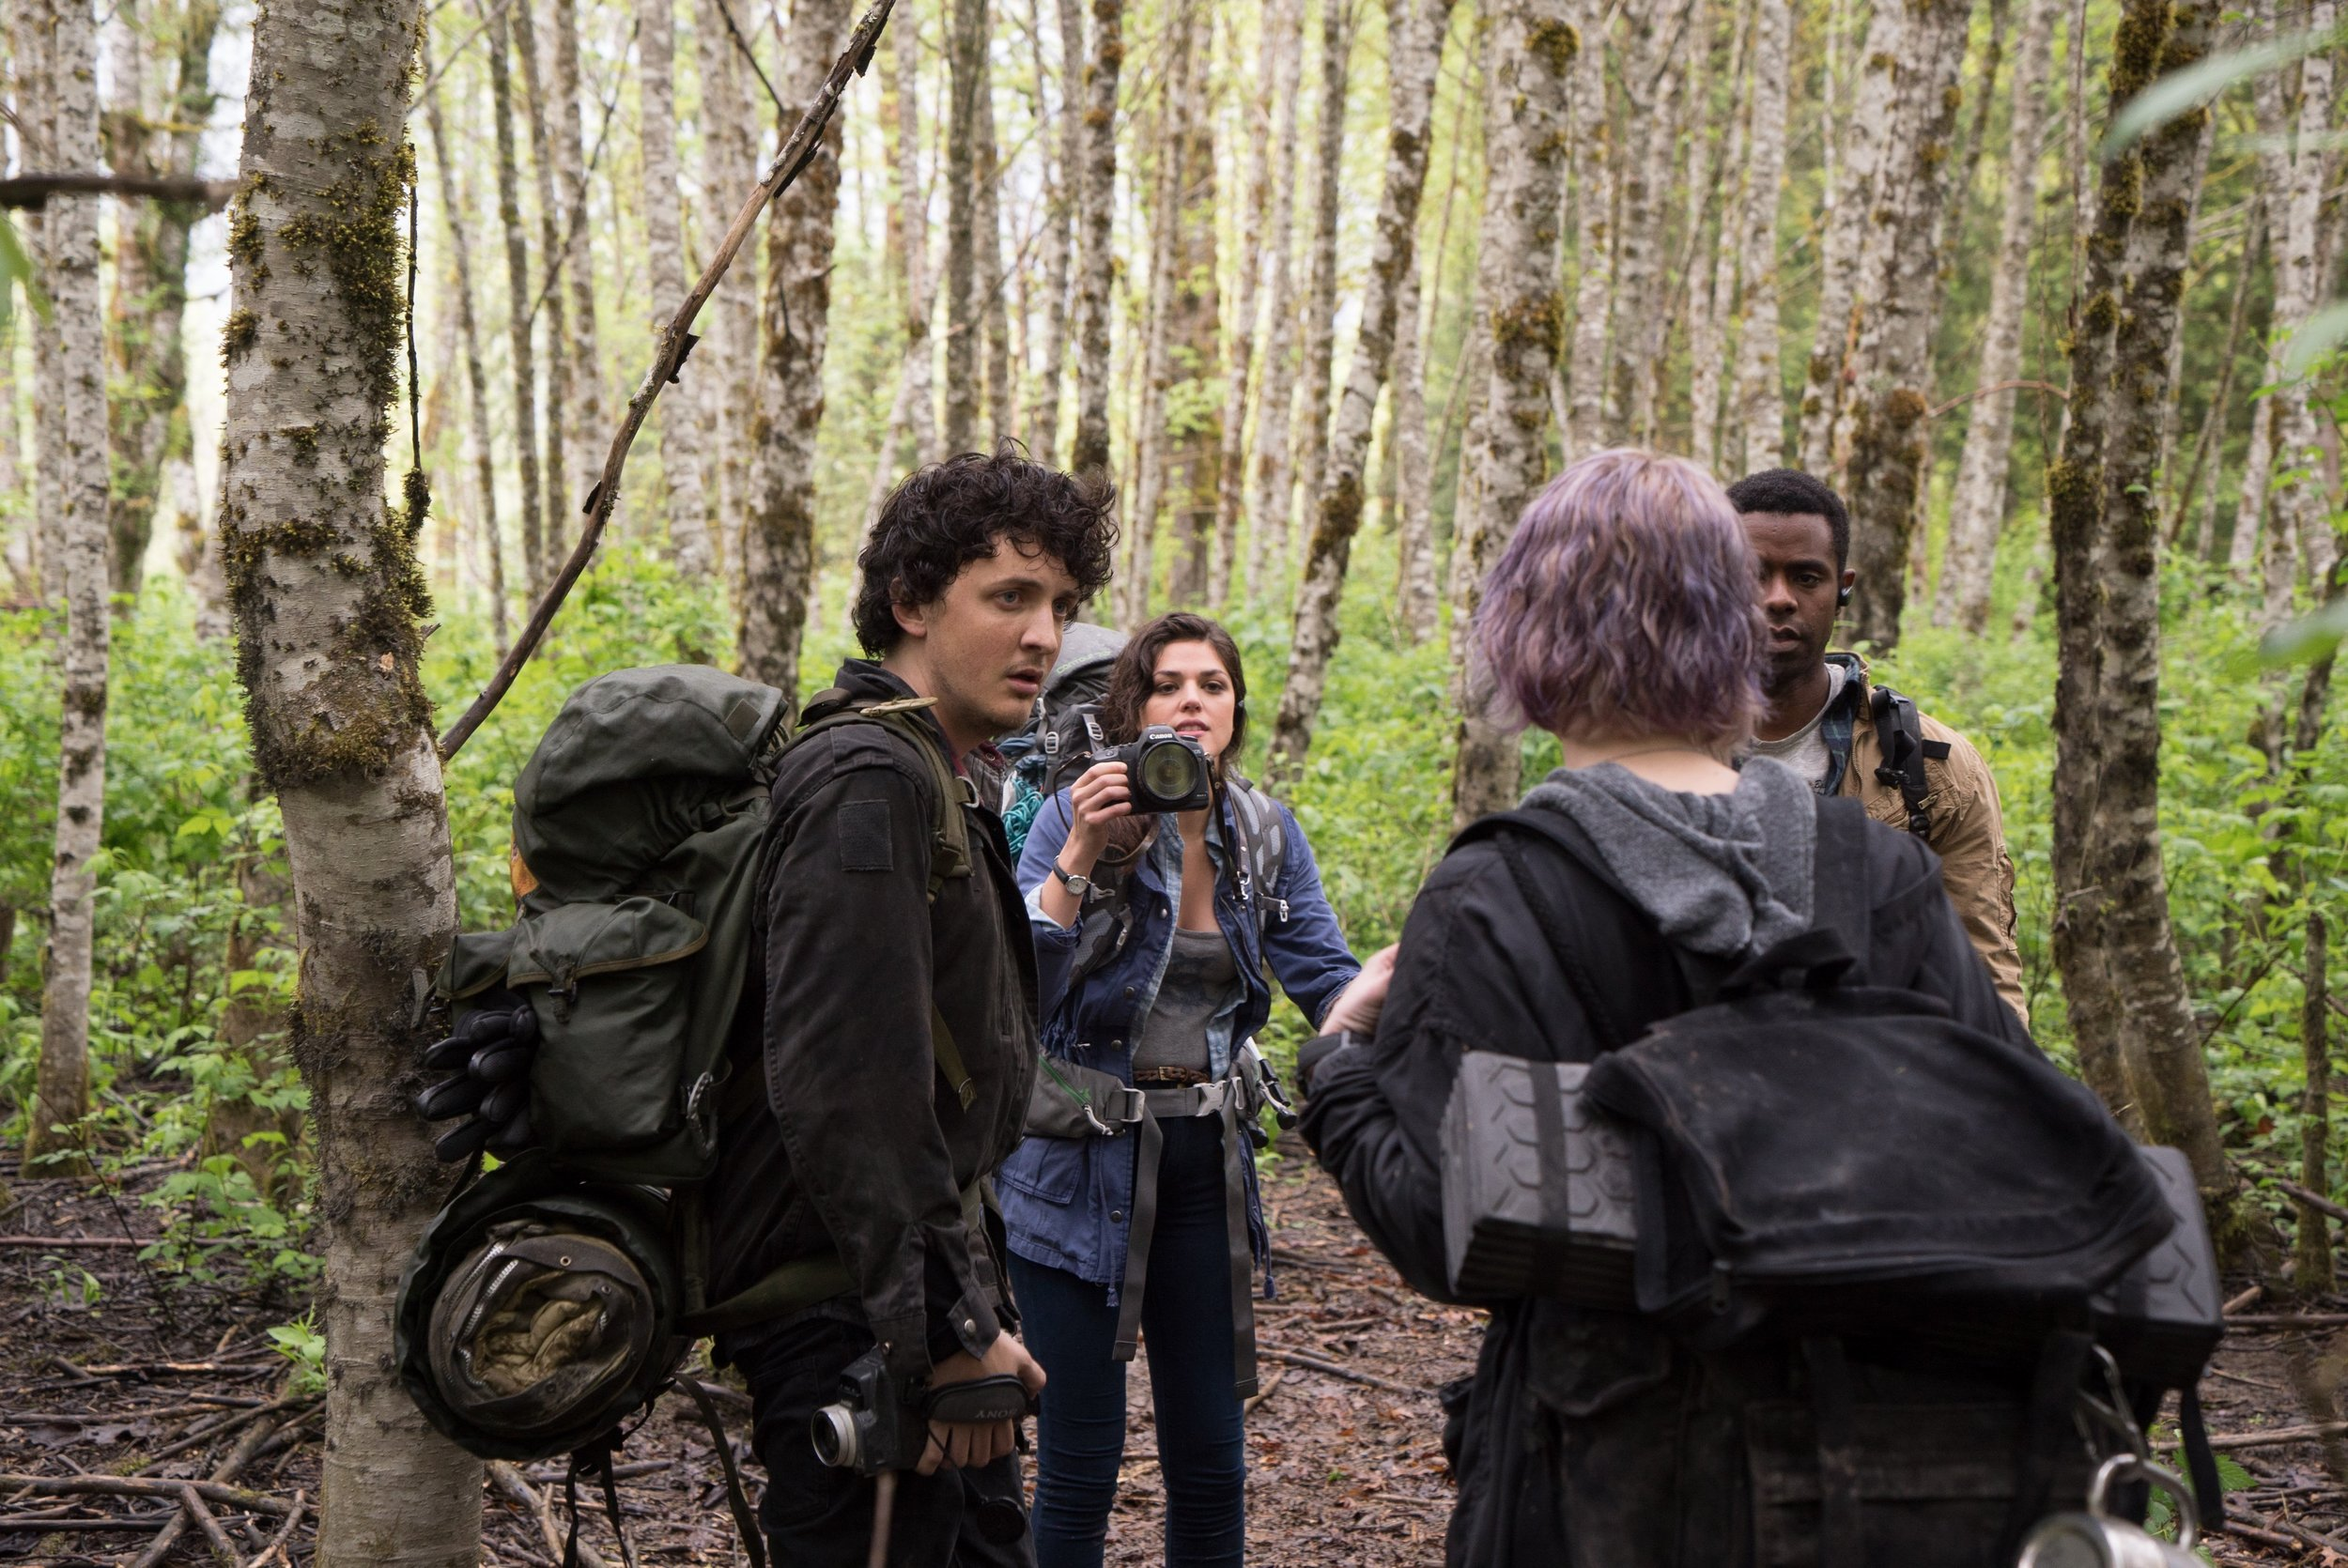 Wes Robinson, Callie Hernandez, Valorie Curry, and Brandon Scott star in  Blair Witch